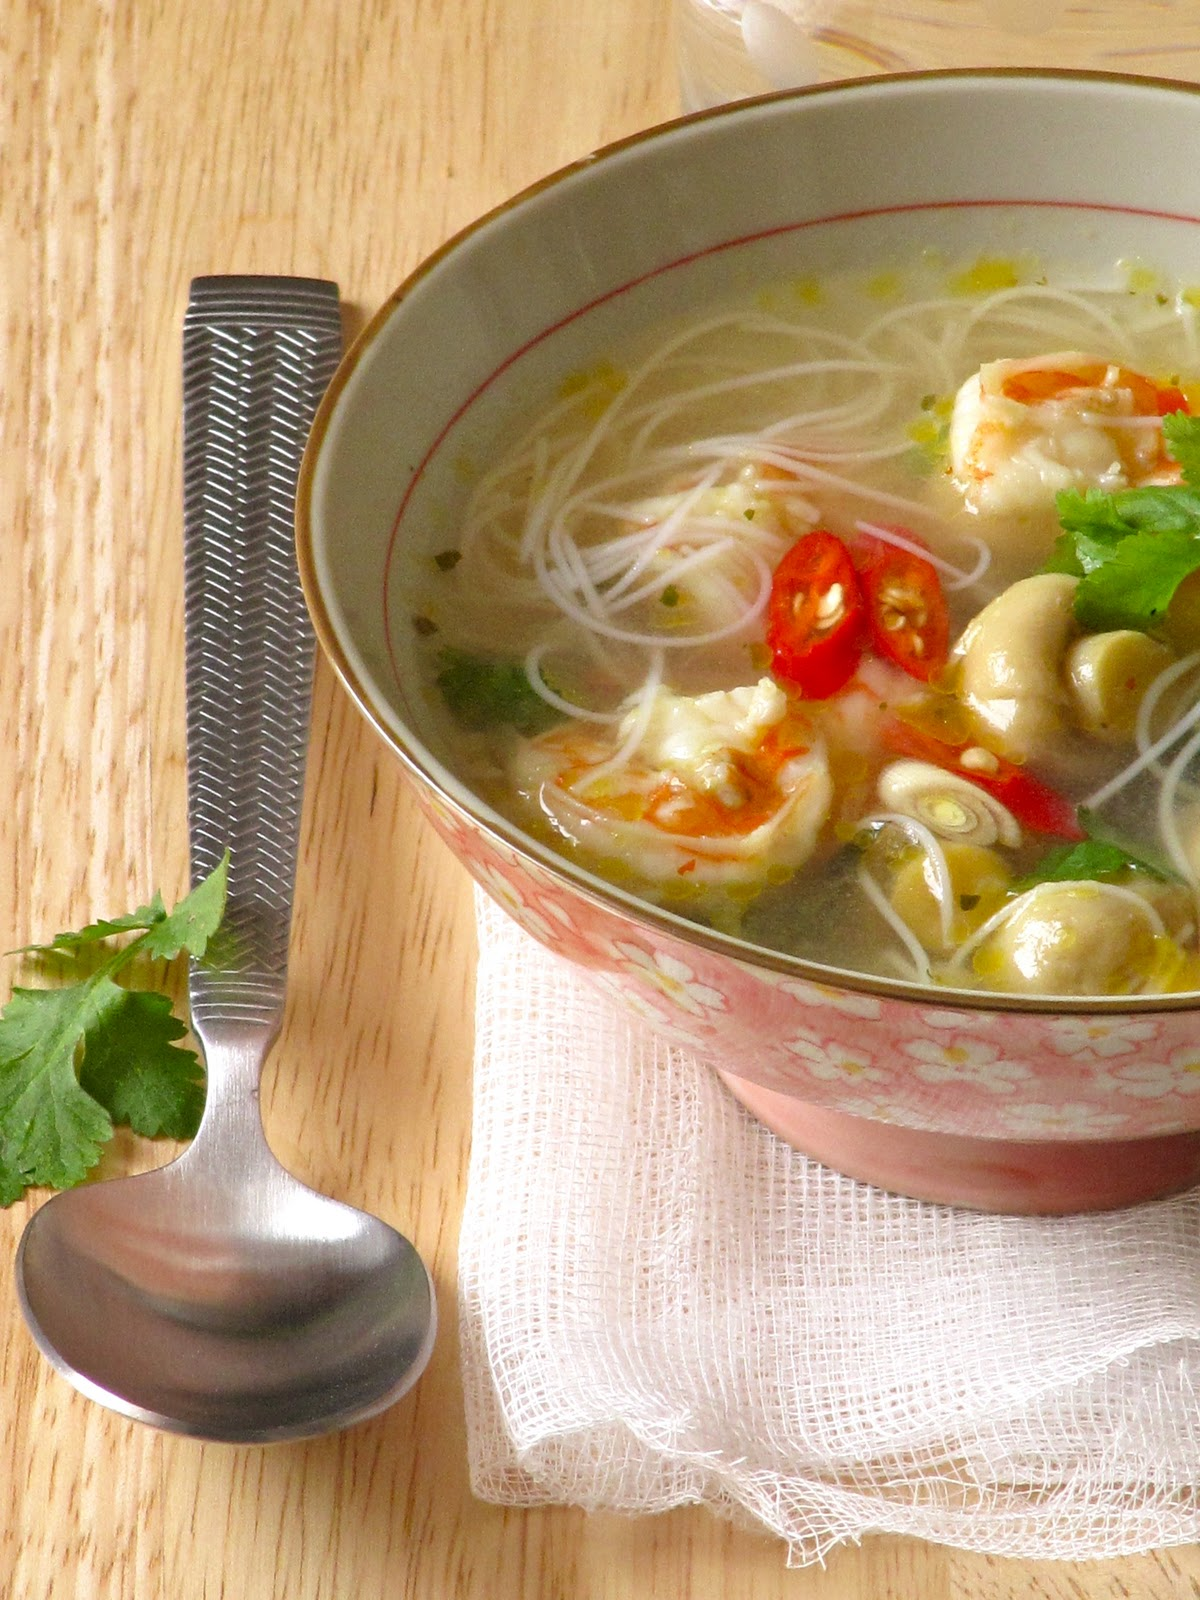 Tom yum goong – Thai hot and sour noodle soupwith shrimp